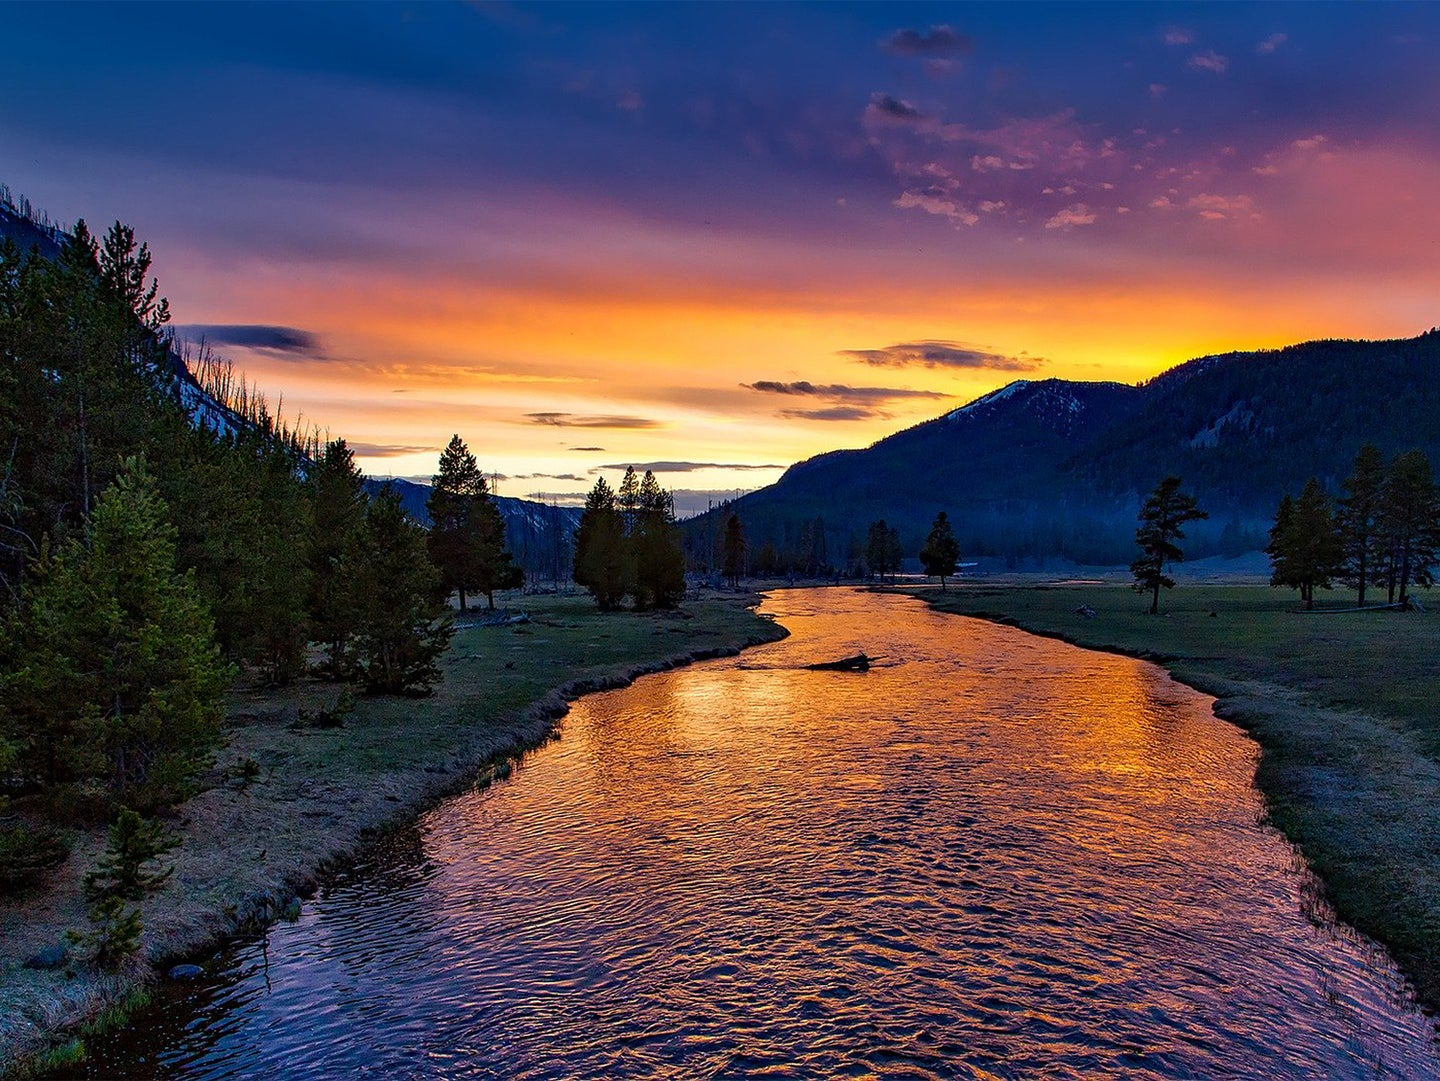 A sunset overlooking the Yellowstone River in Yellowstone National Park.